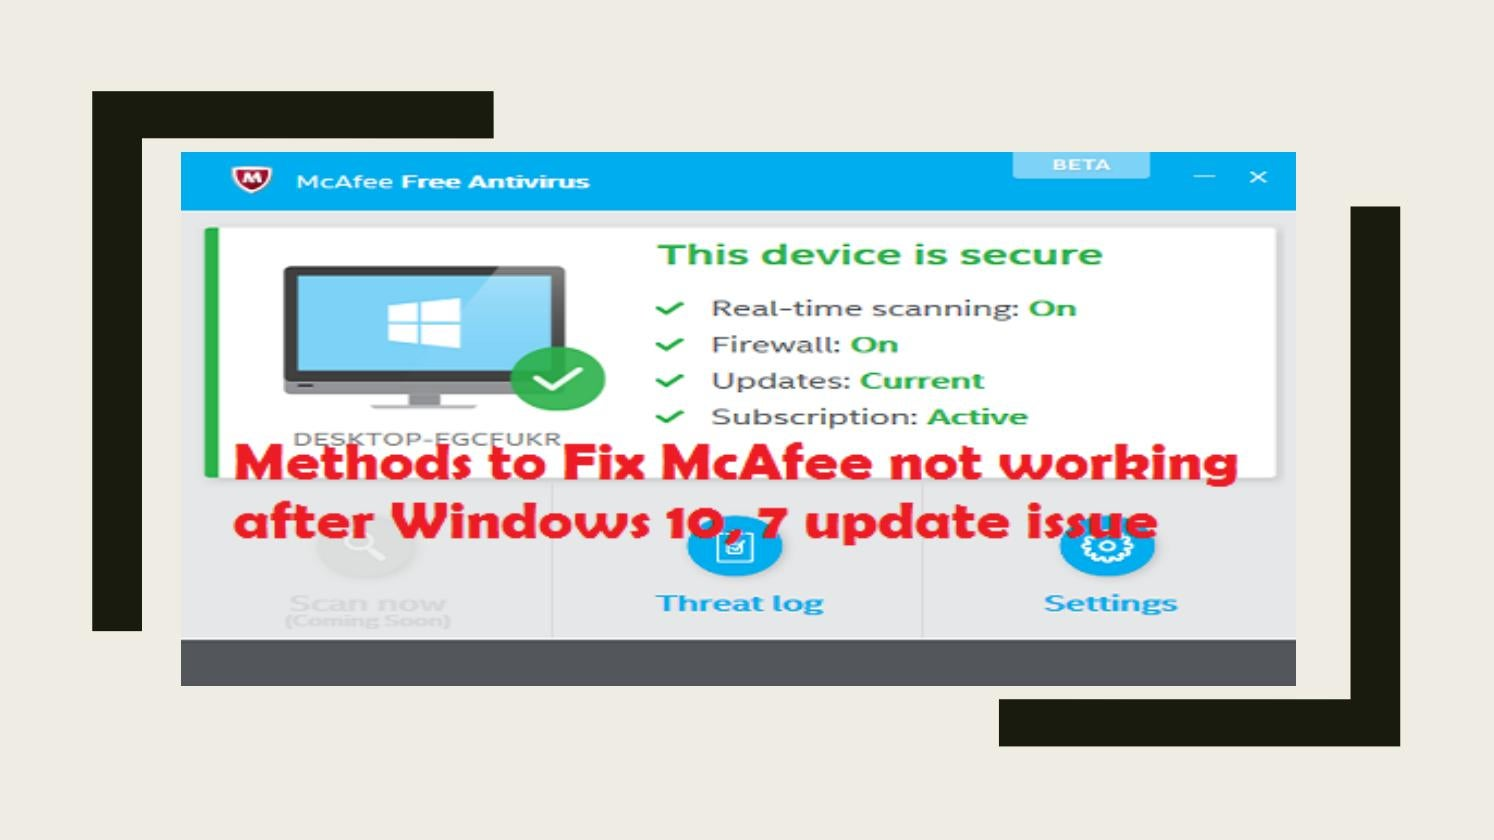 18005837461 | Fix McAfee not working after Windows 10, 7